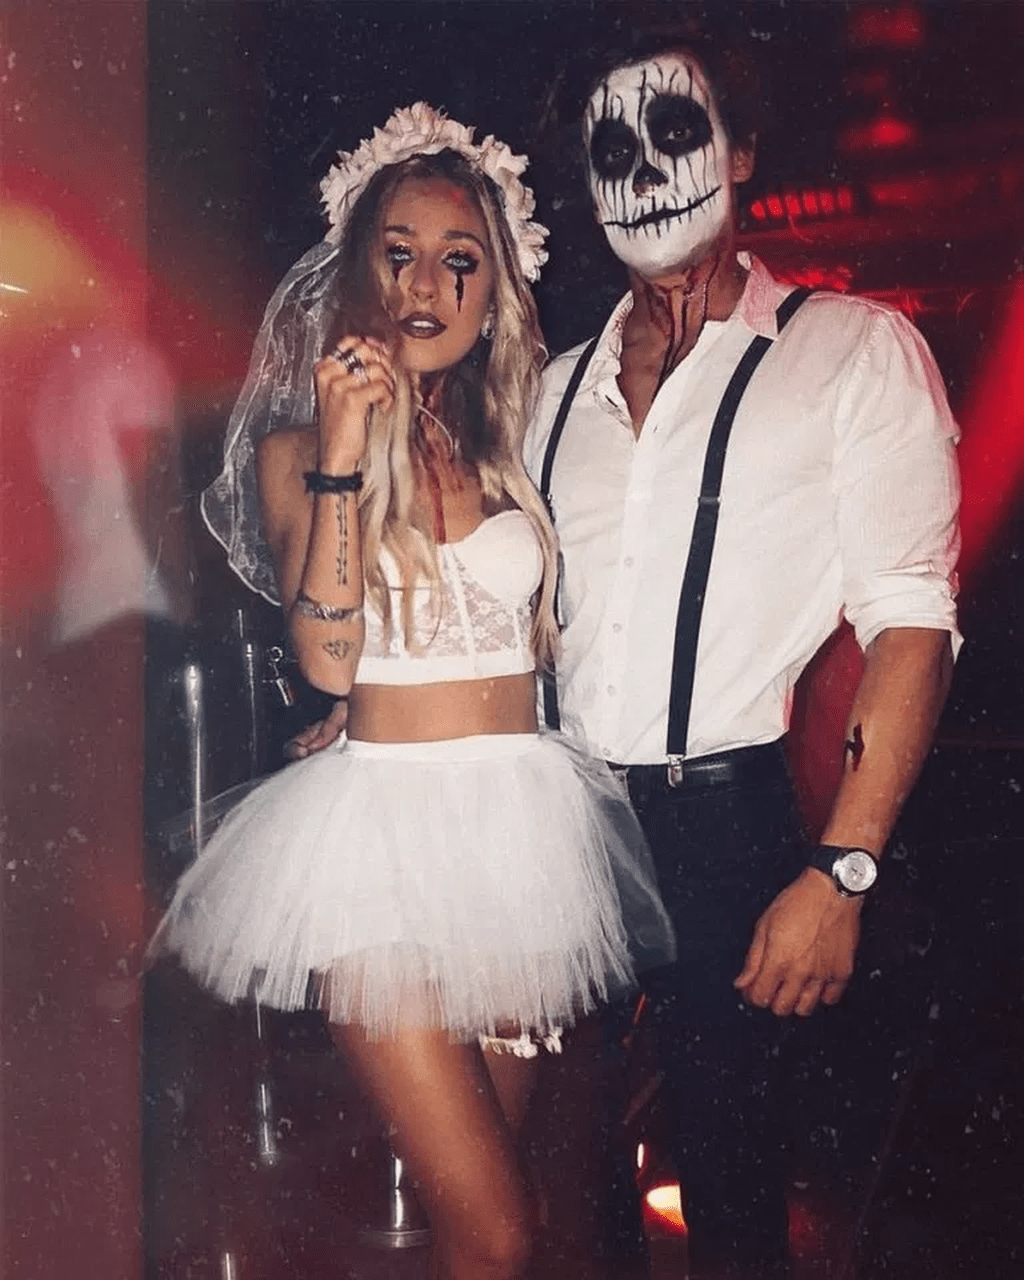 40 Awesome Couples Halloween Costumes Ideas #couplehalloweencostumes 40 Awesome Couples Halloween